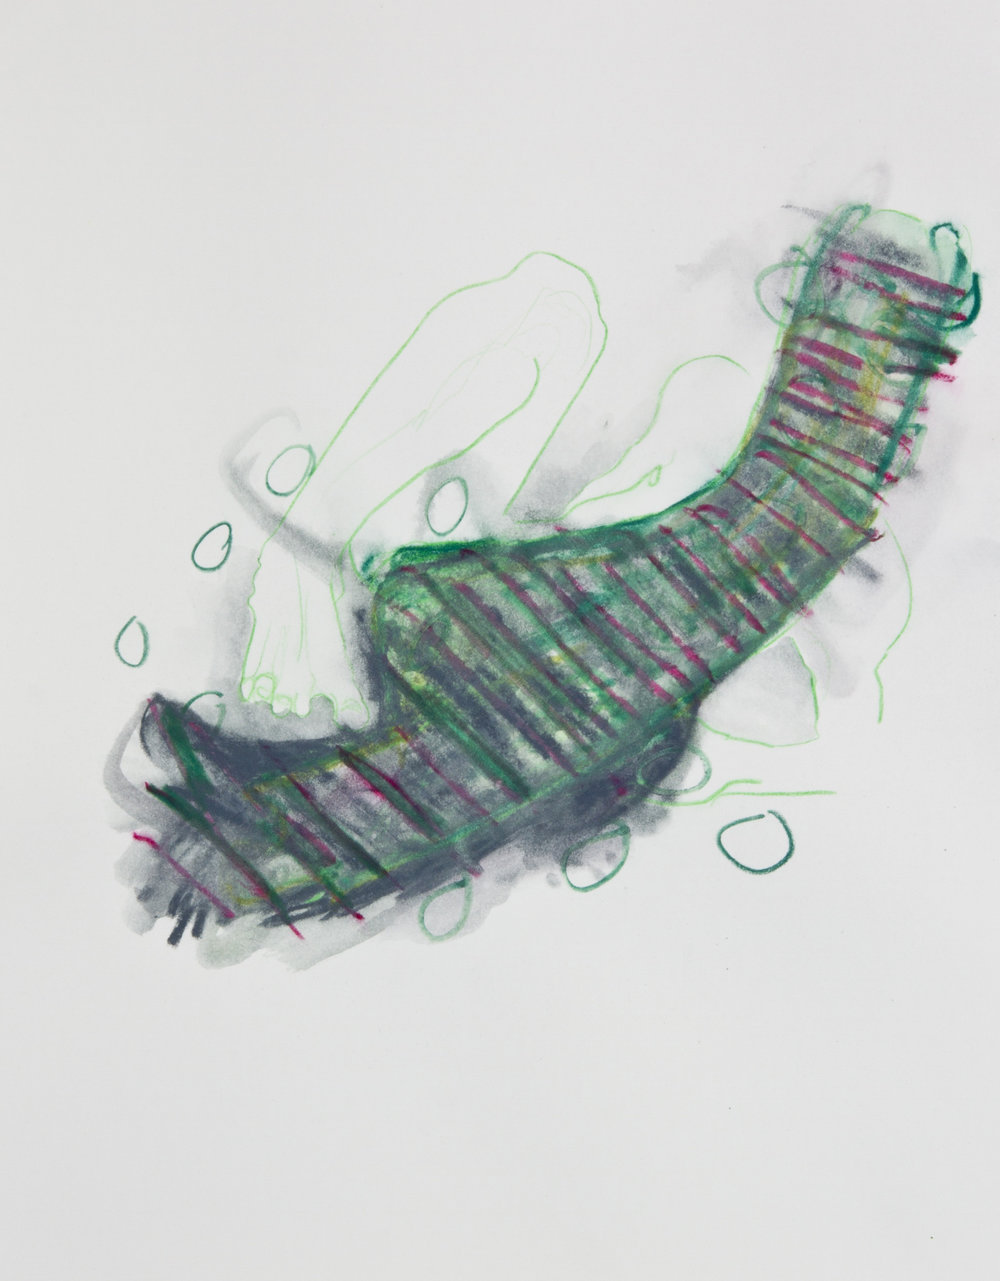 Swamp Ash, 2013, graphite, crayon and watercolor pencil on paper, 11x14 inches